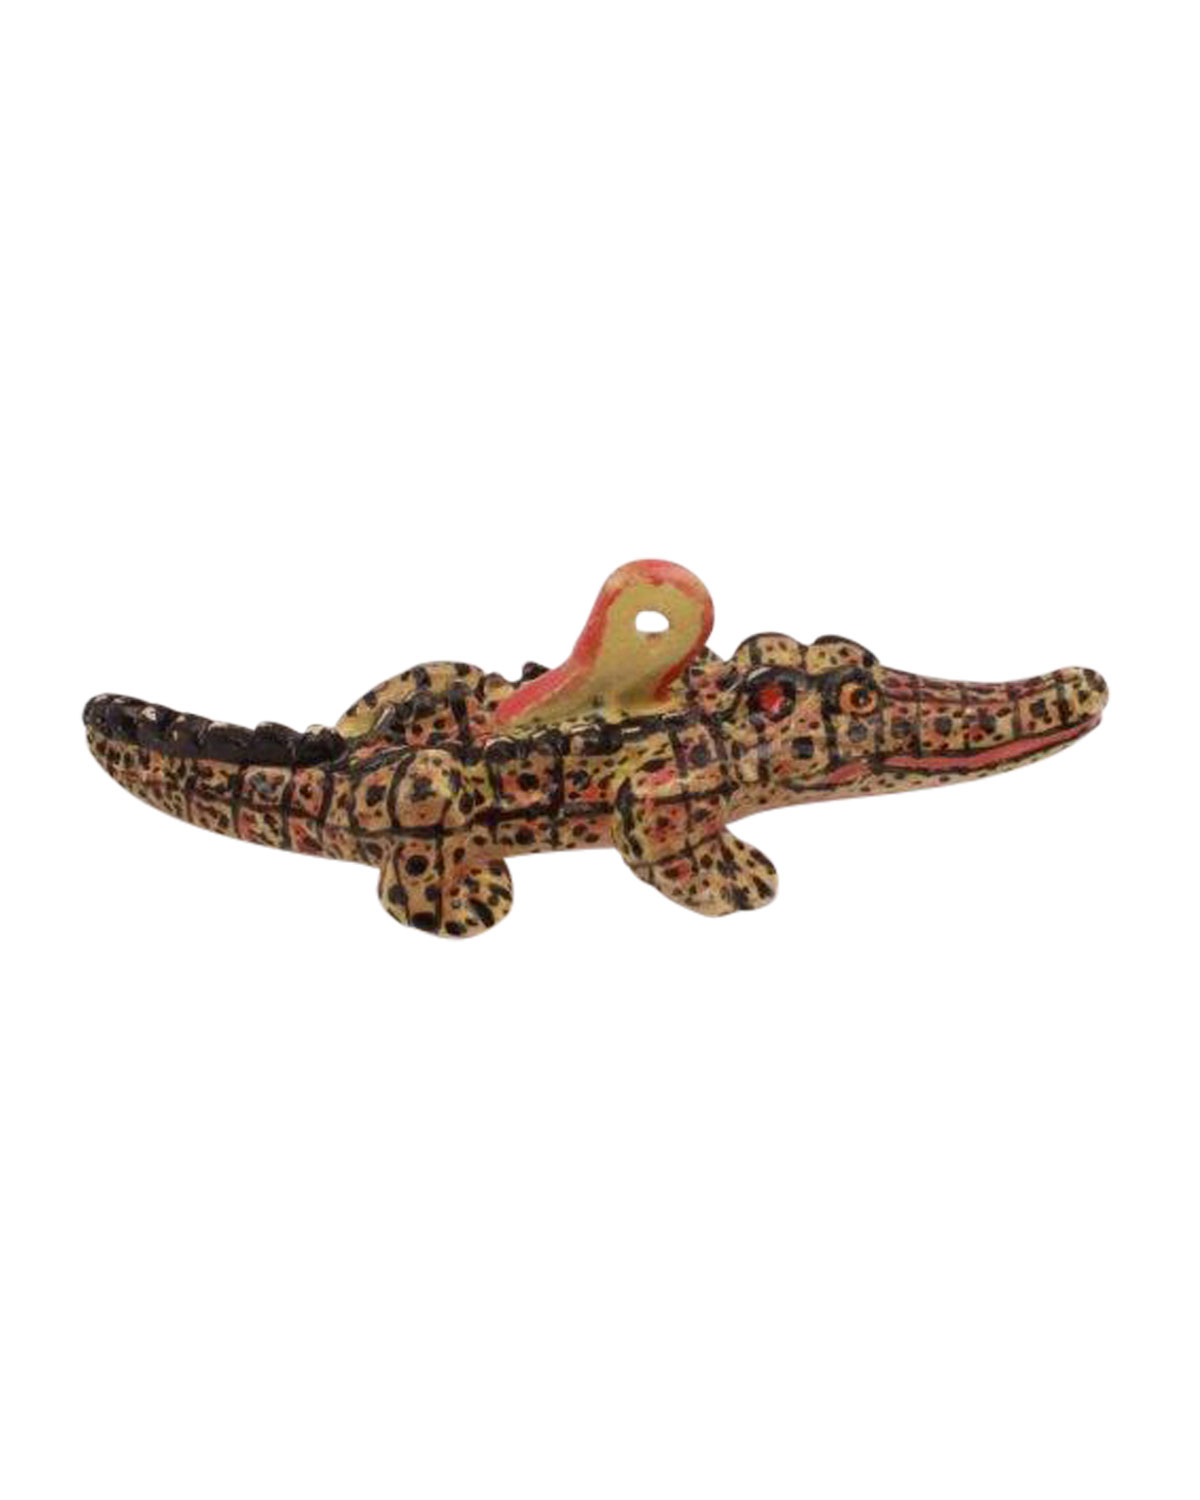 Ardmore Ceramic Art Crocodile Ornament